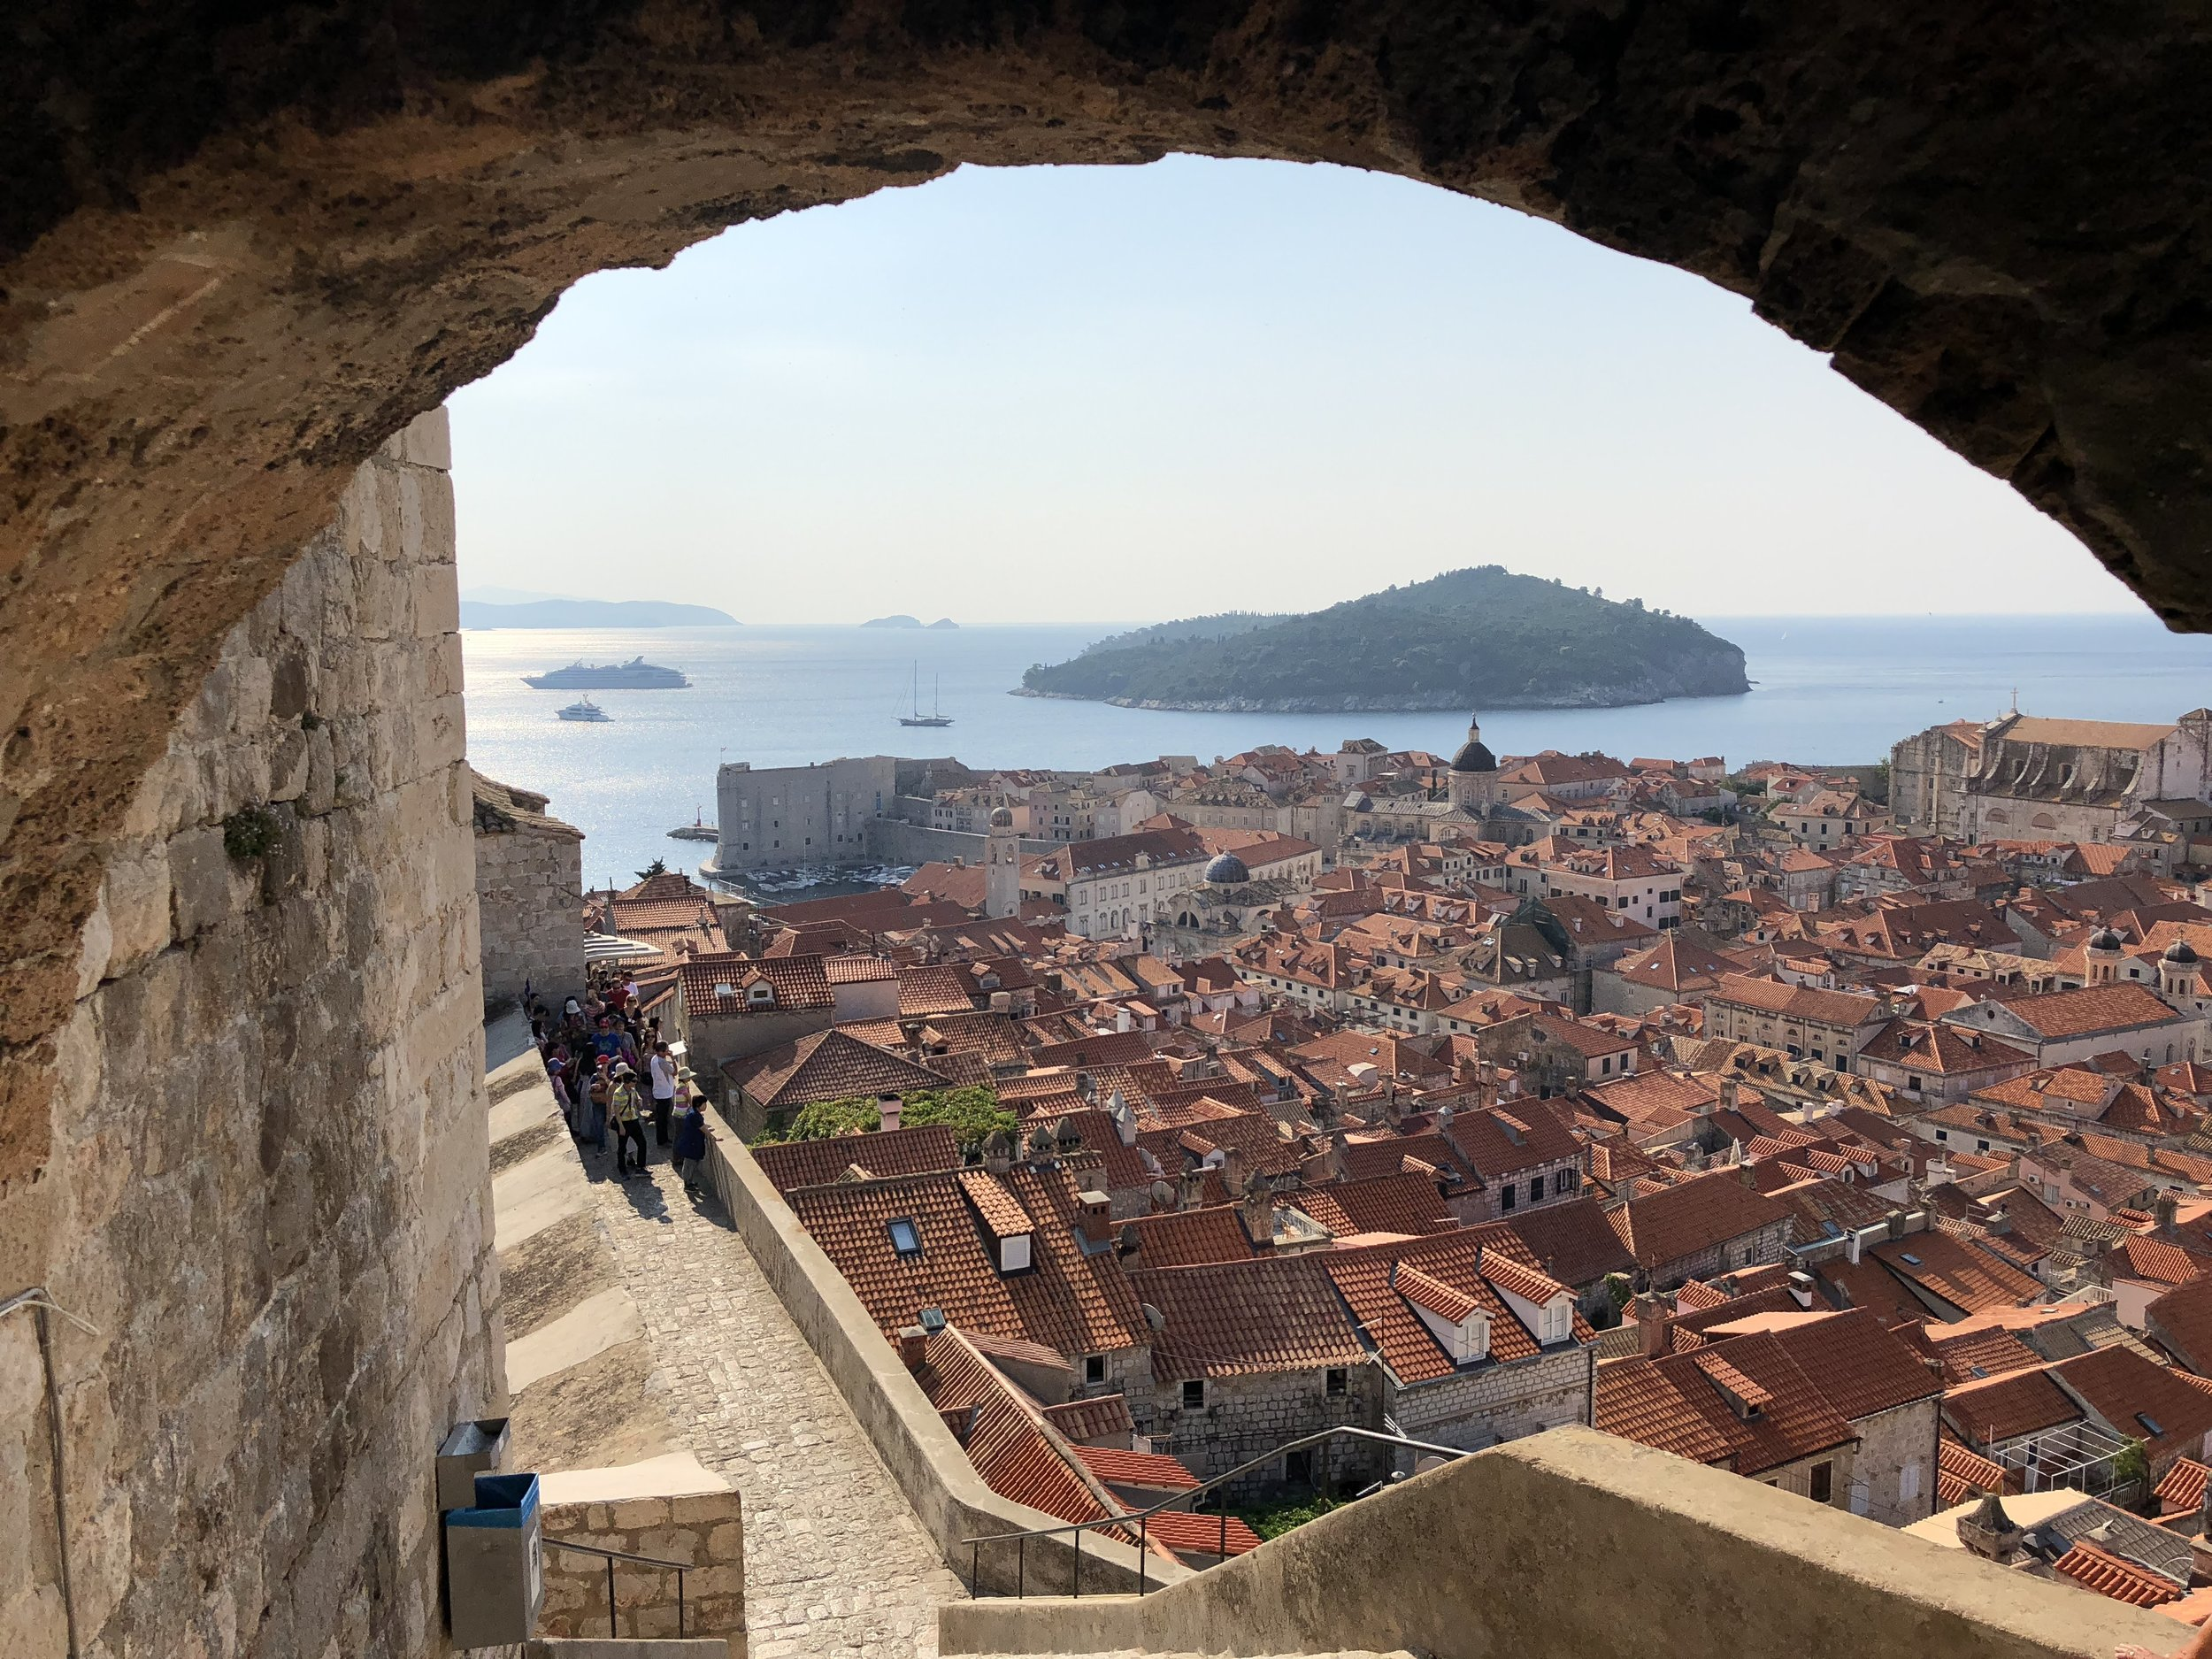 A formidable boundary: the ancient walls of Dubrovnik, Croatia